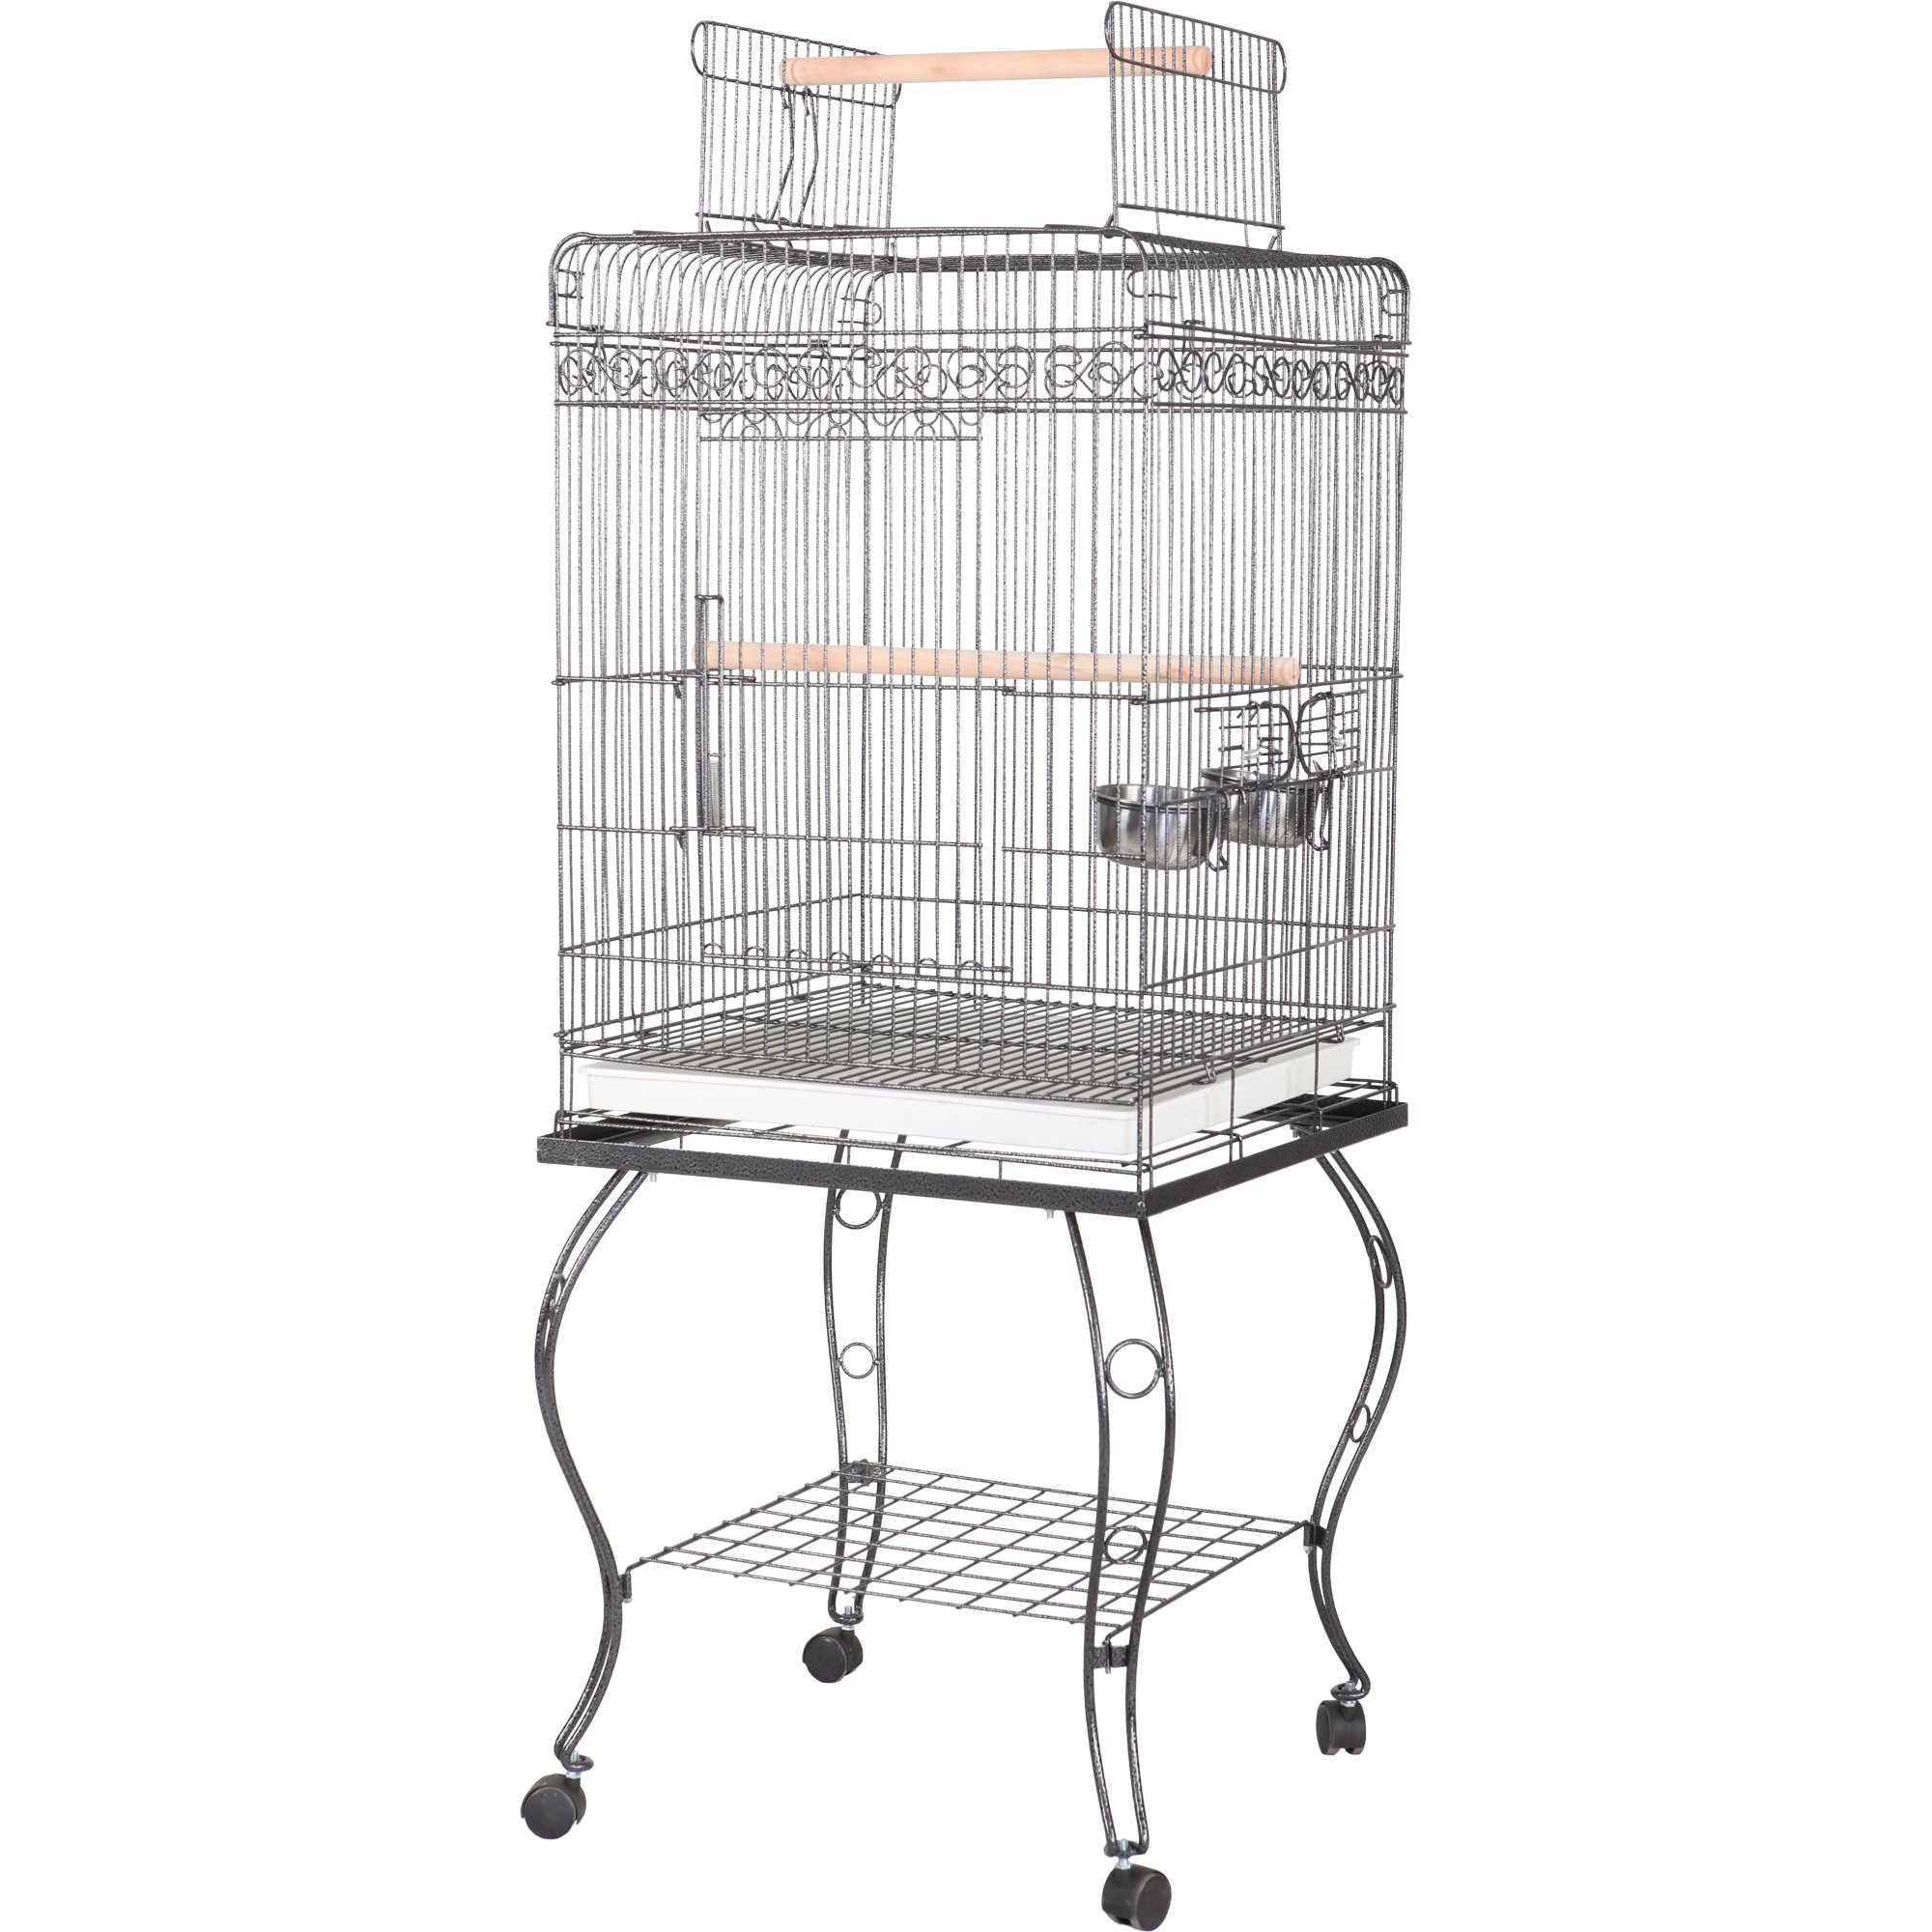 """A&E Cage Company 20"""" X 20"""" Play Top Bird Cage in Platinum"""